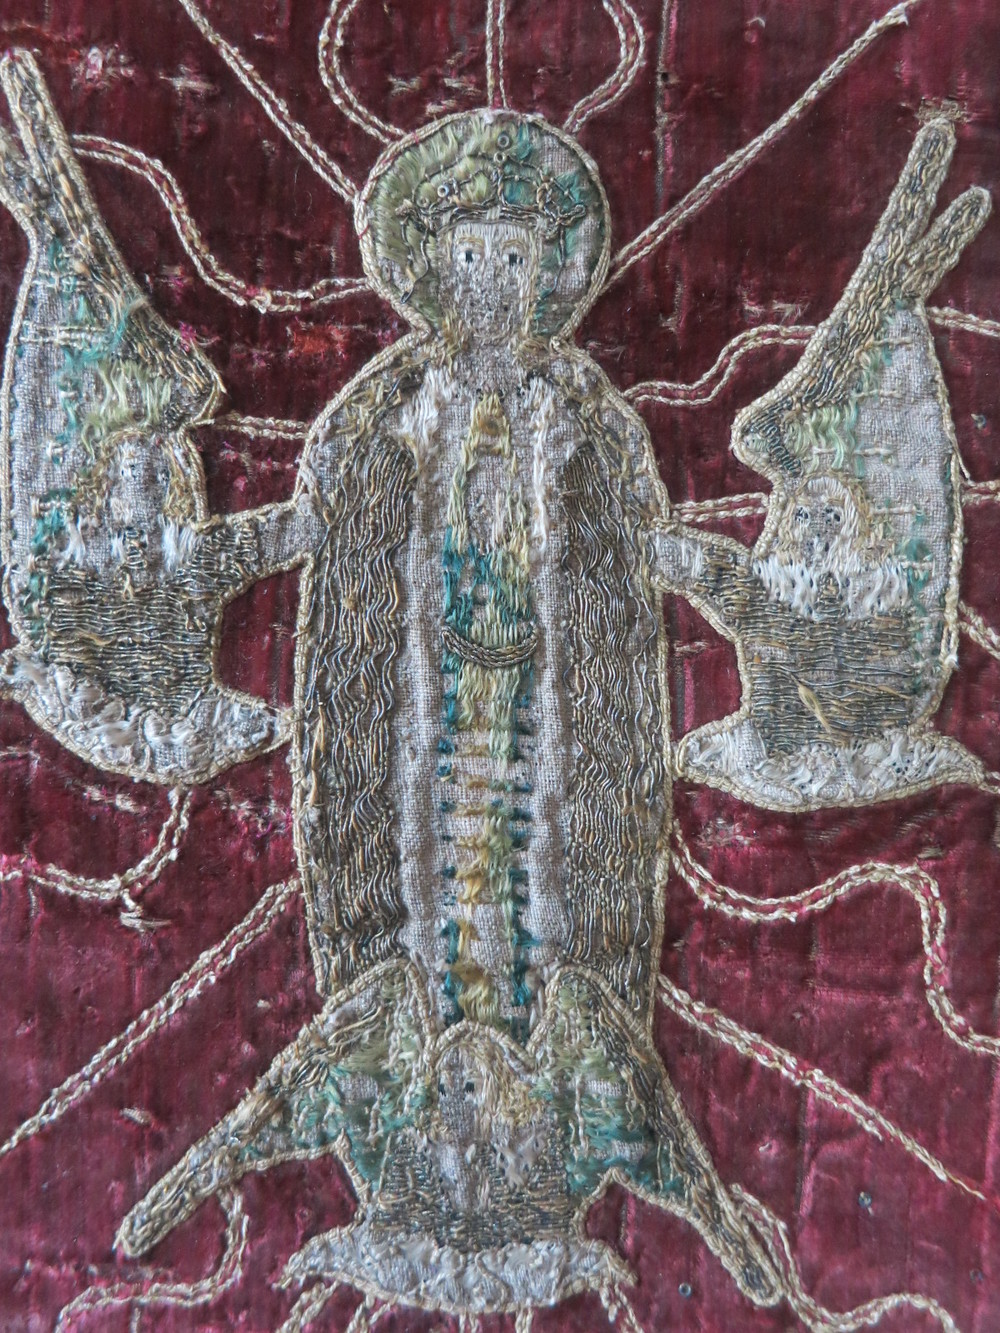 The Assumption of the Virgin Mary on the velvet of the Skenfrith Cope